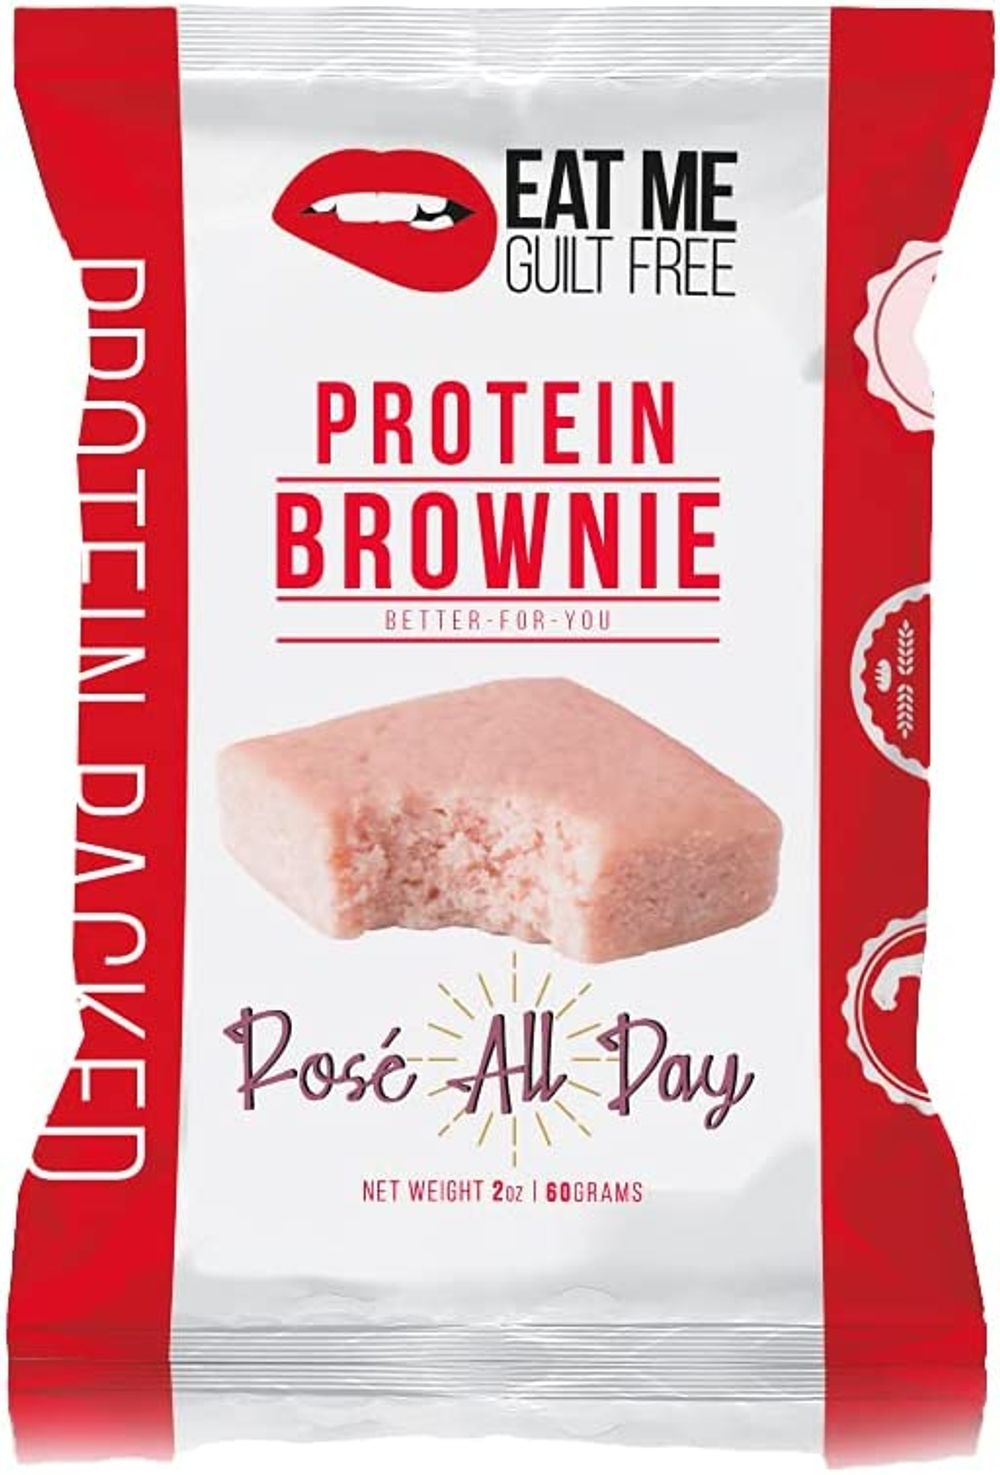 Eat Me Guilt Free Protein Blondie - Rose All Day (12 Pack) Low Carb Snack or Dessert, 14g Protein